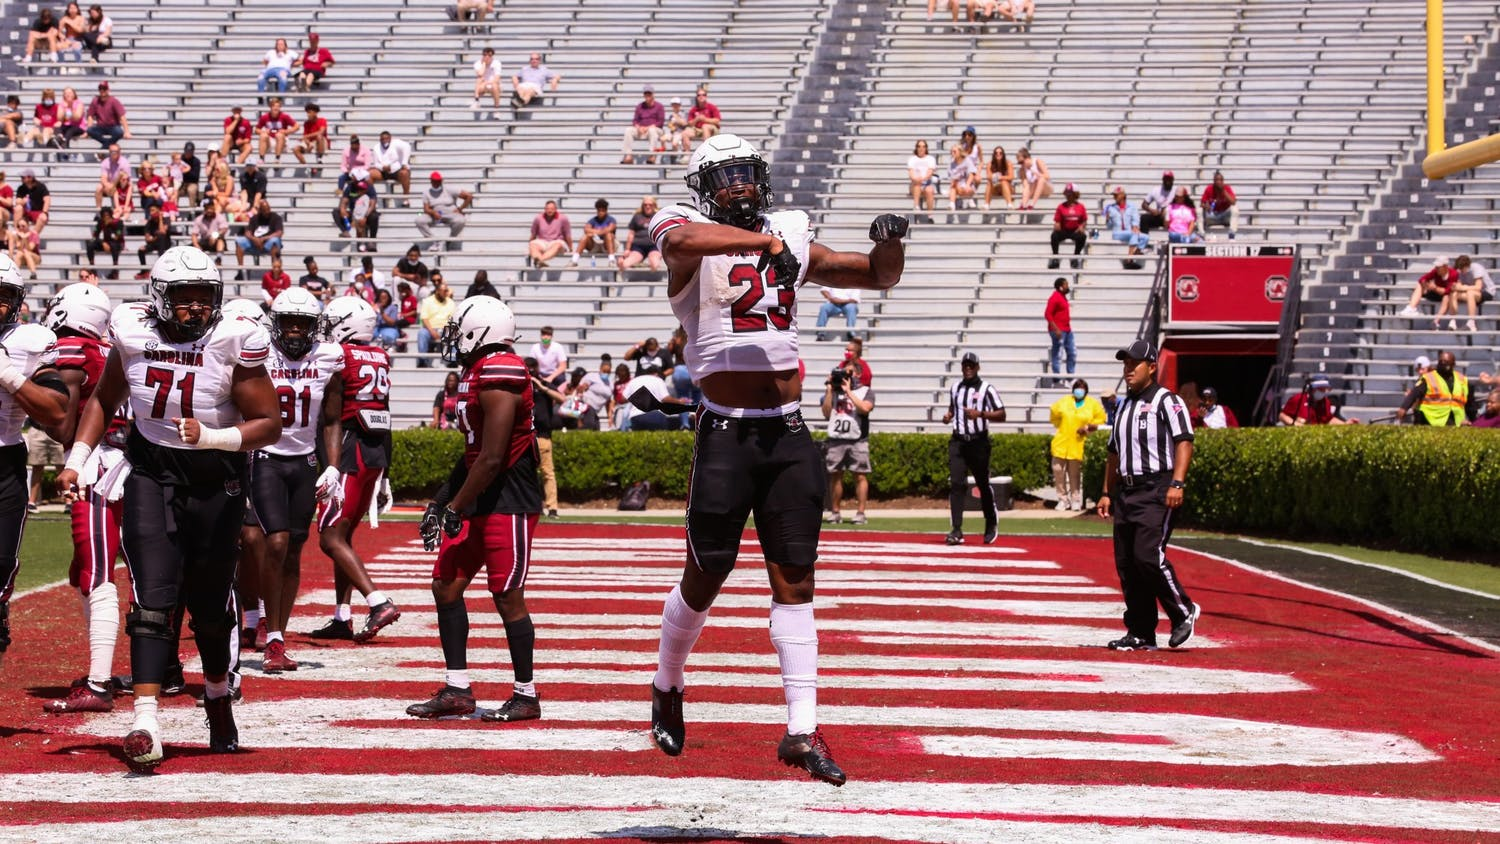 Sophomore tight end Jaheim Bell jumping within the endzone during the 2021 Spring Game.